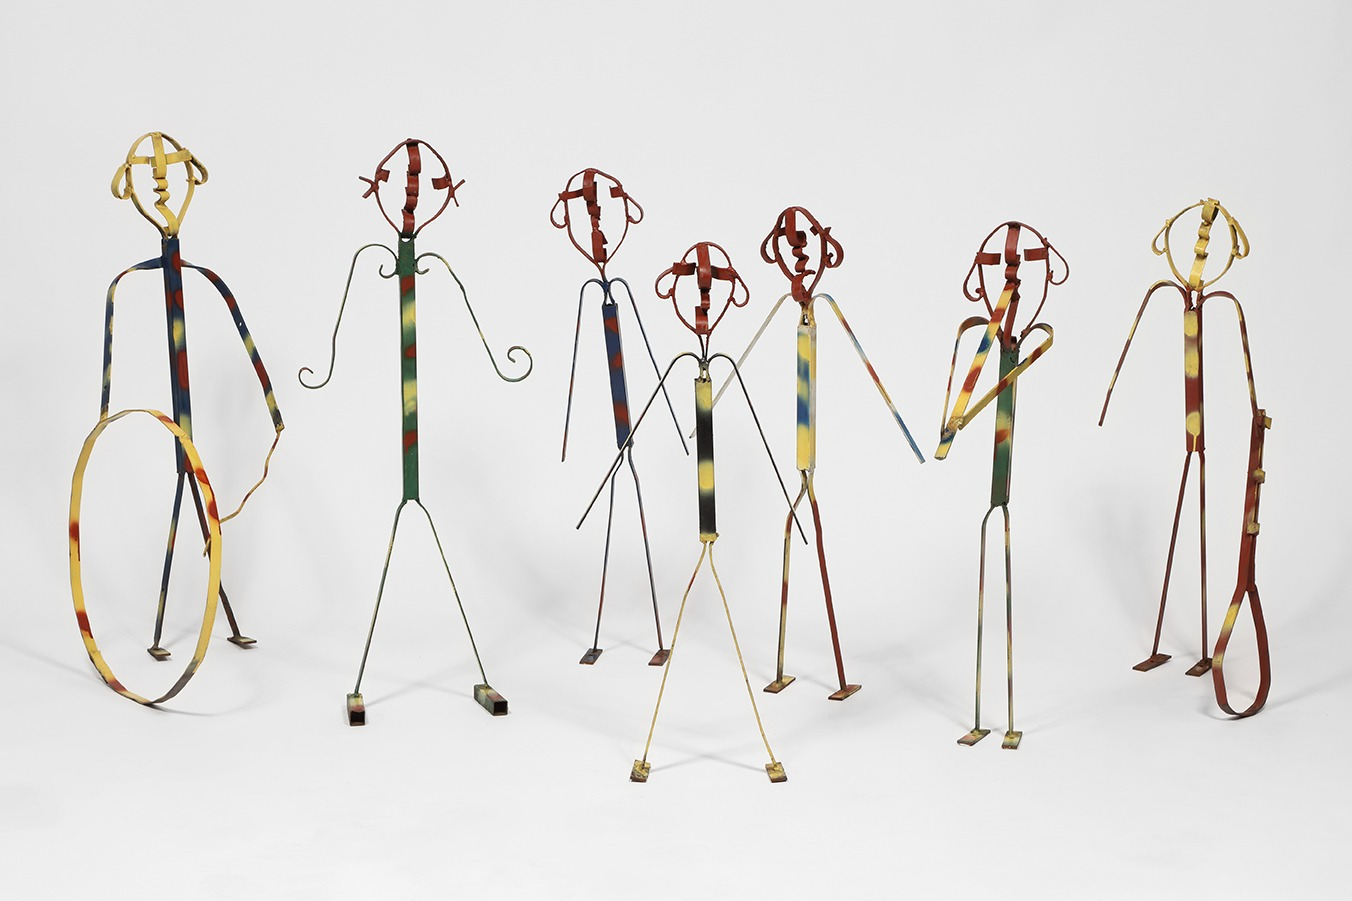 An untitled set of sculptures by Thornton Dial, dated 1987.